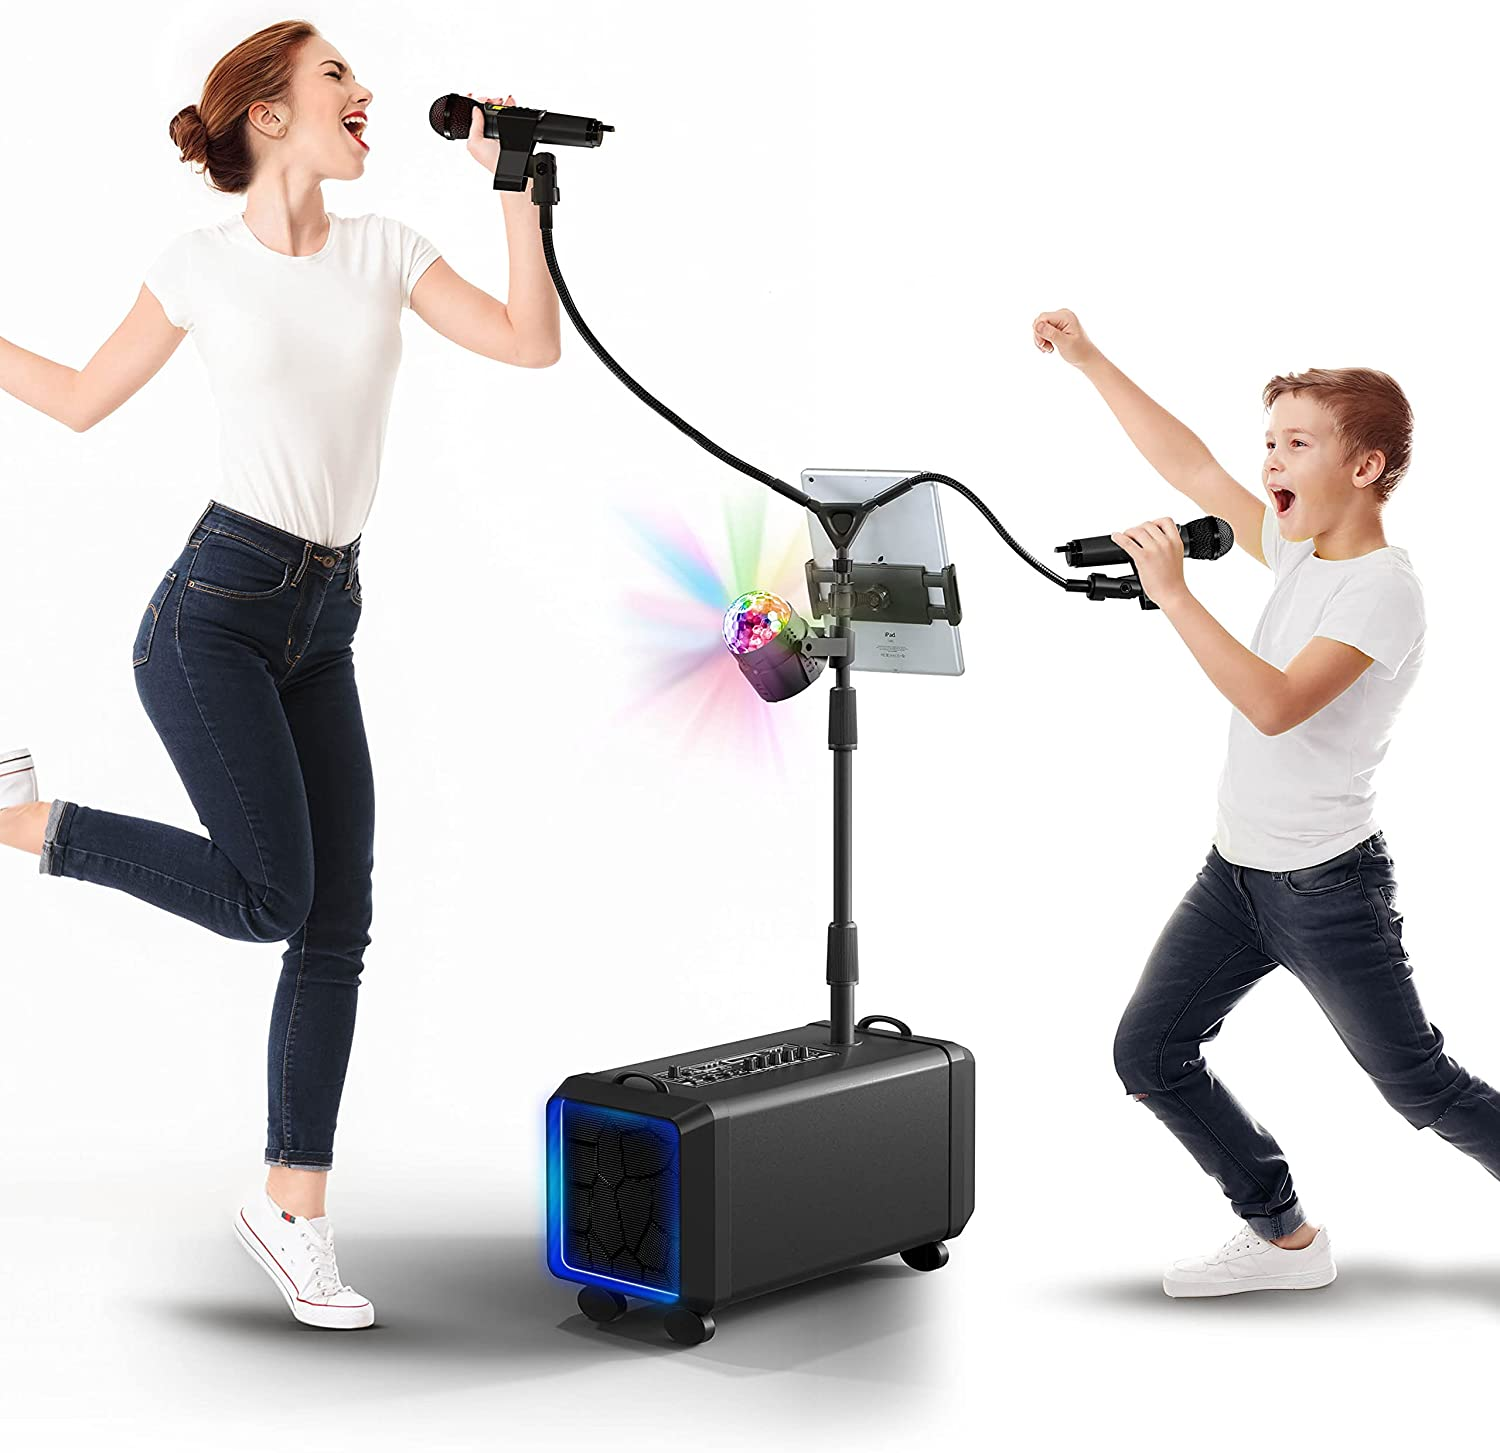 Bluetooth Karaoke Machine for Max 64% OFF Adults and Super sale period limited Kids Wireless Karao - 2